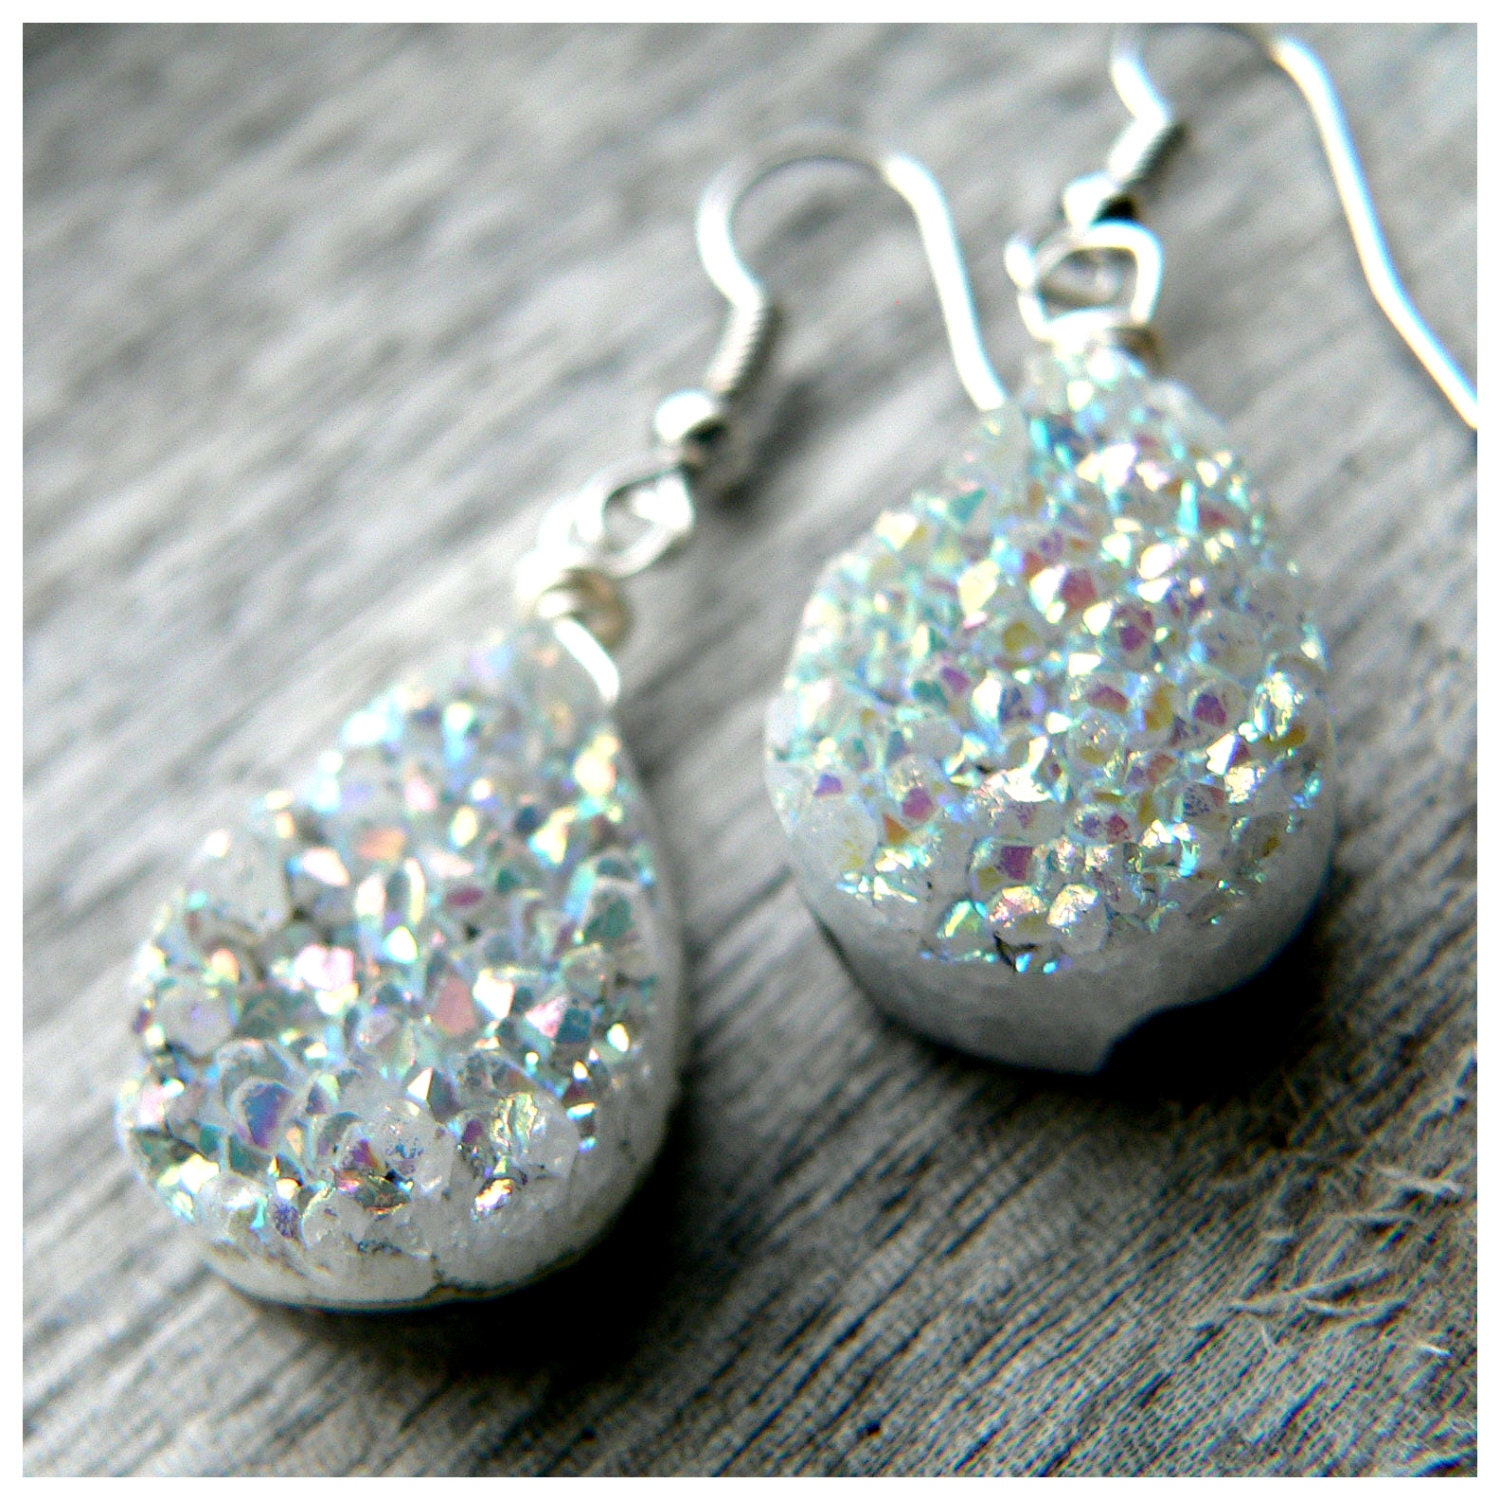 Gray Druzy Quartz Teardrop Earrings on Hypo-allergenic French Hooks - KattilacGems